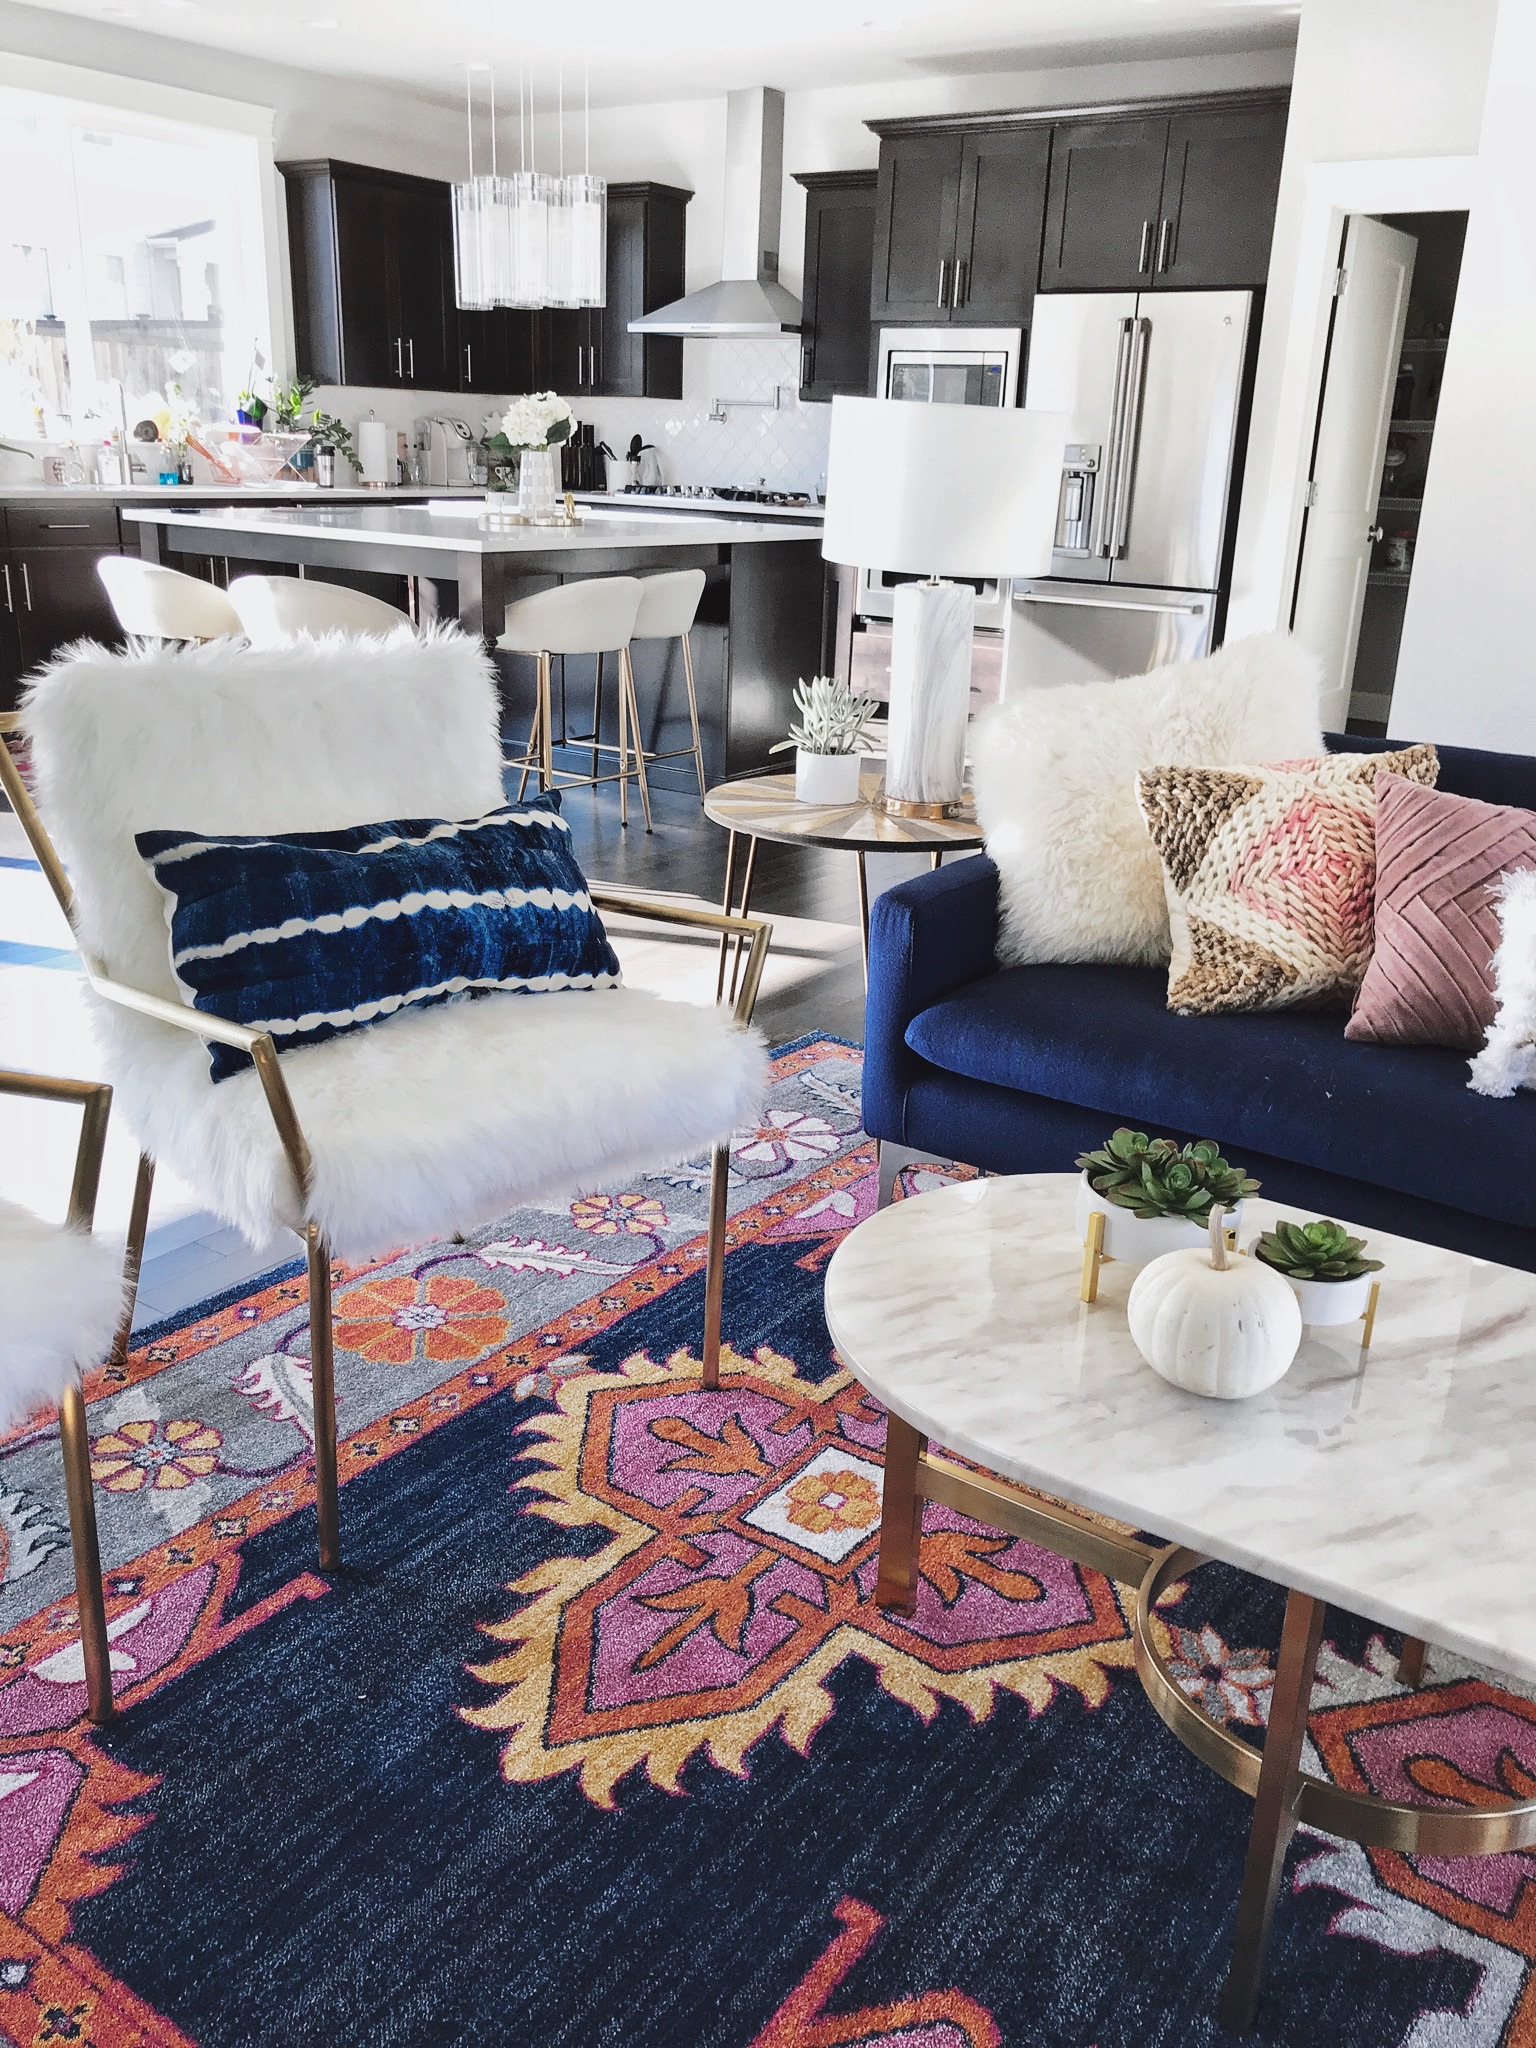 Updated Classics: 10 Living Room Ideas | Decoholic on Modern Boho Decor  id=23680